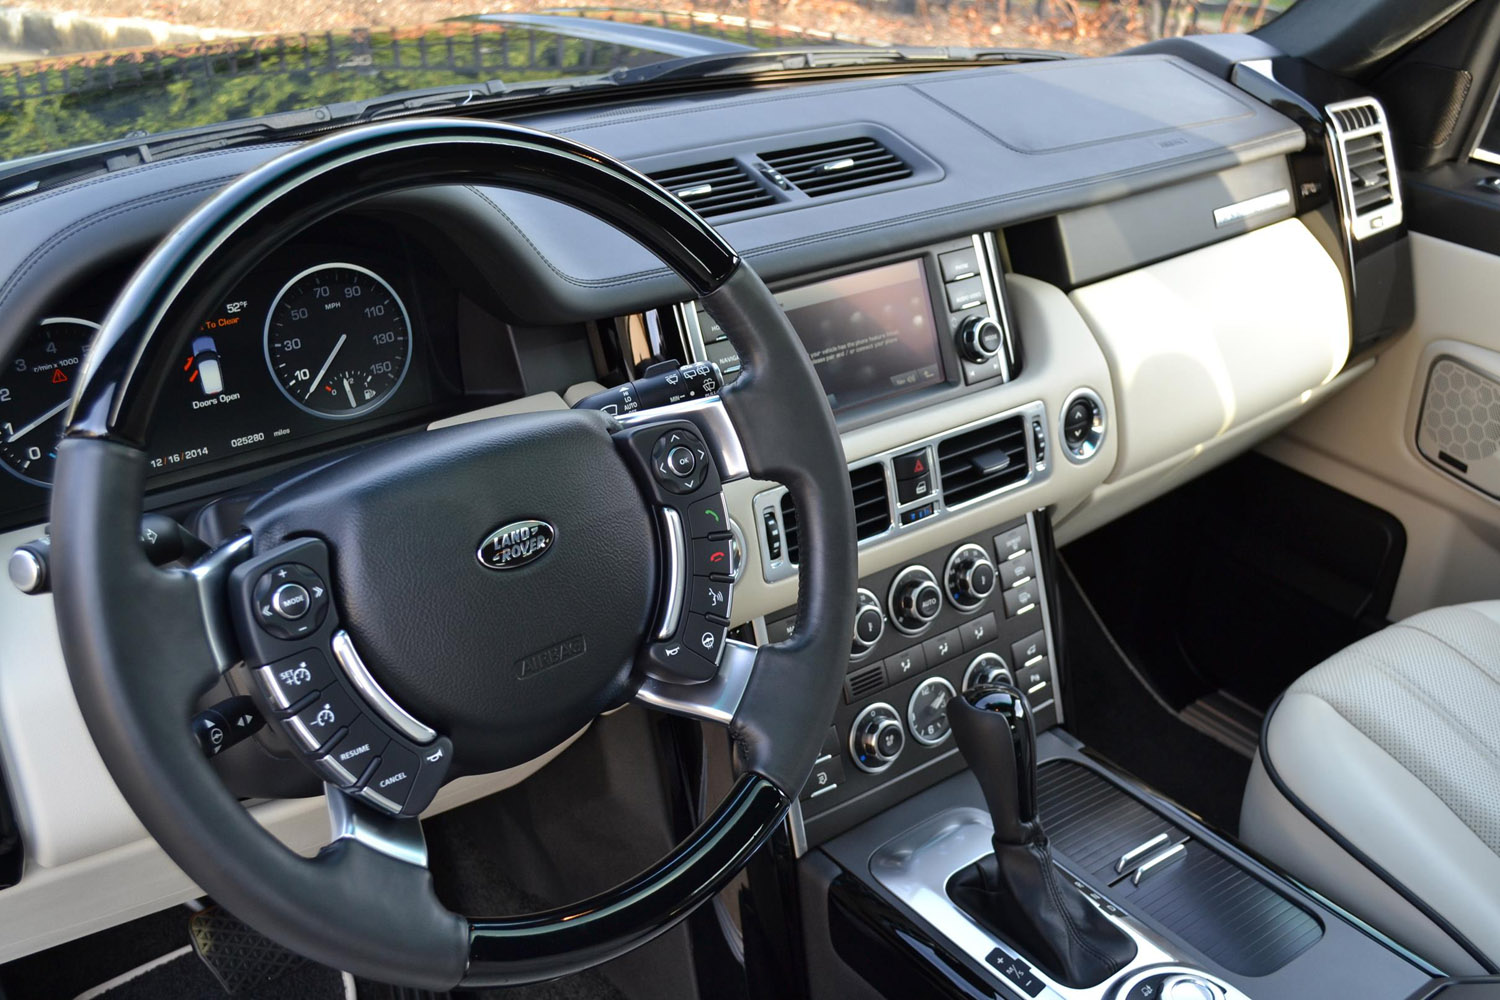 range rover hse 2012 interior images galleries with a bite. Black Bedroom Furniture Sets. Home Design Ideas